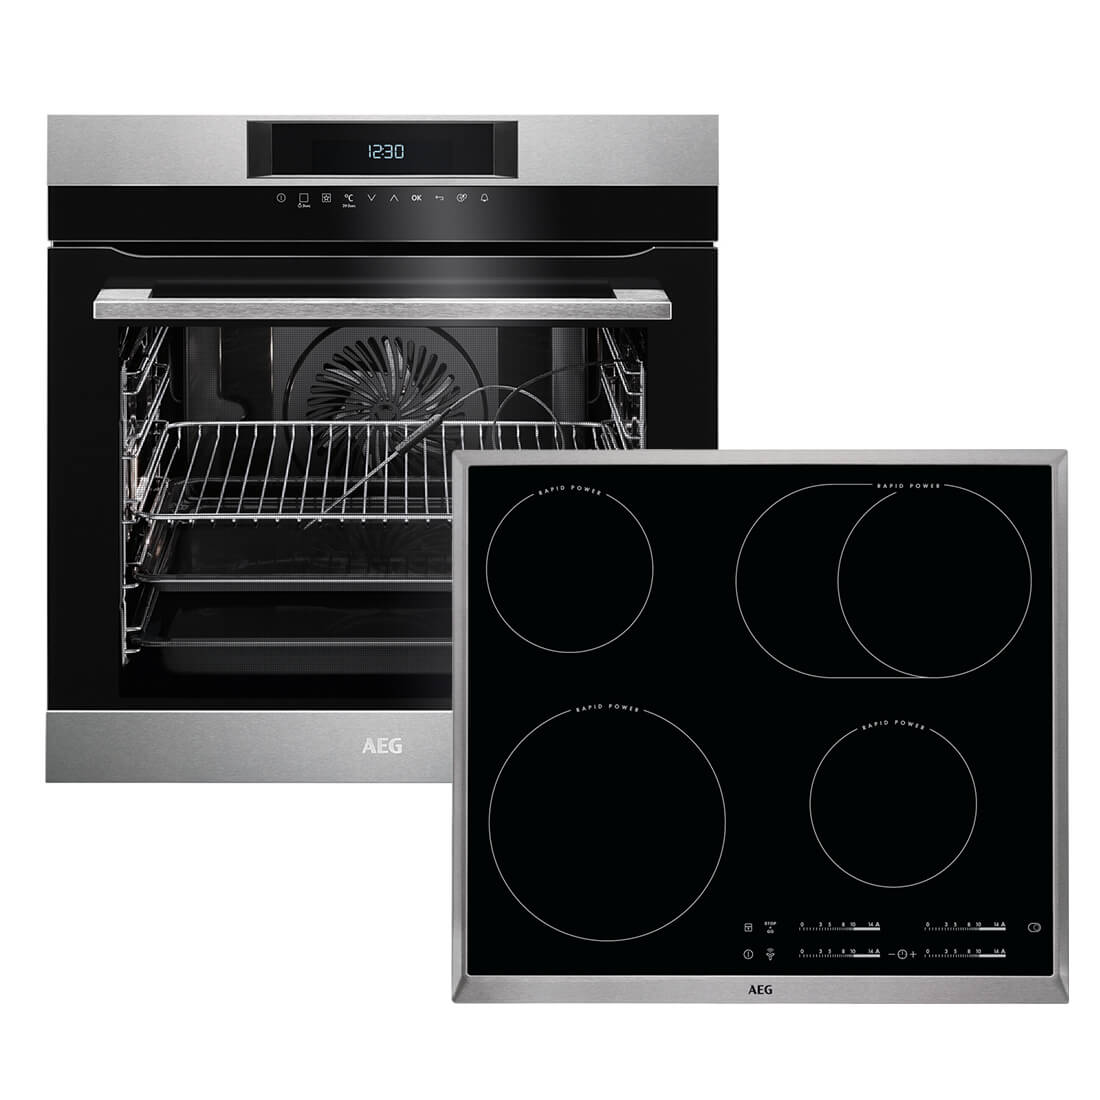 aeg bpk742 backofen set bpk742220m backofen hk654850x b autark ceran kochfel ebay. Black Bedroom Furniture Sets. Home Design Ideas